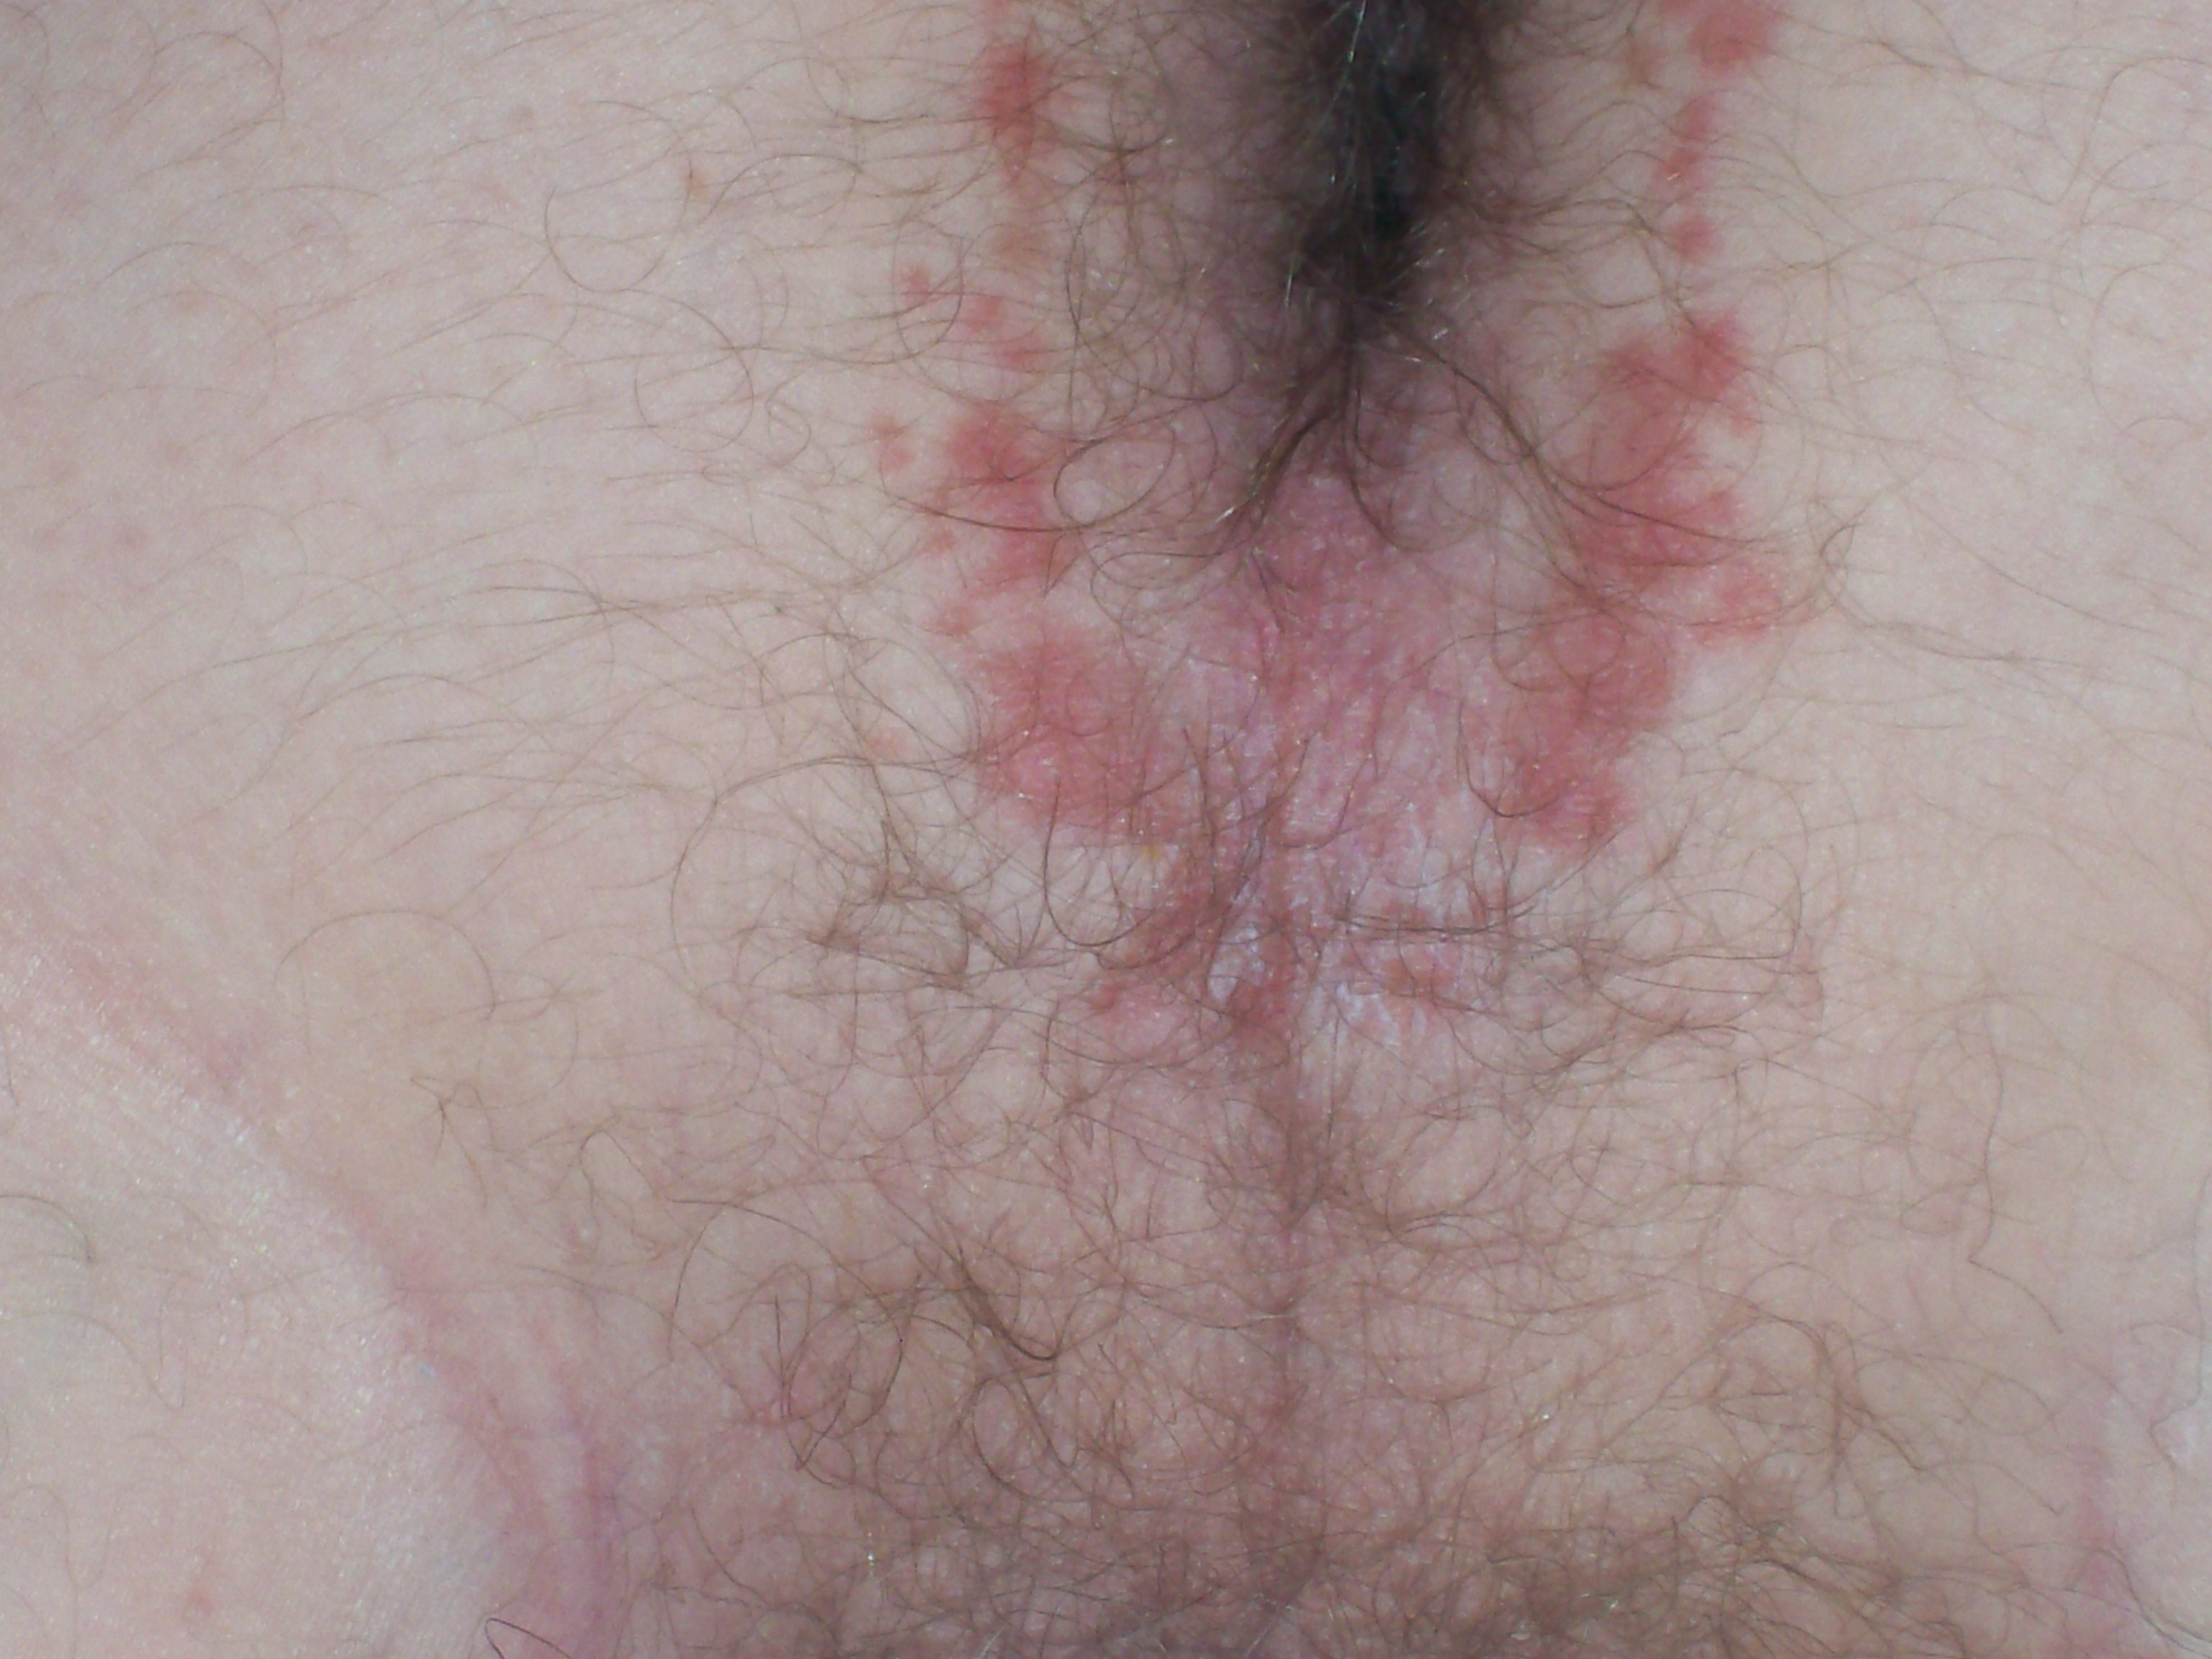 Redness around anus